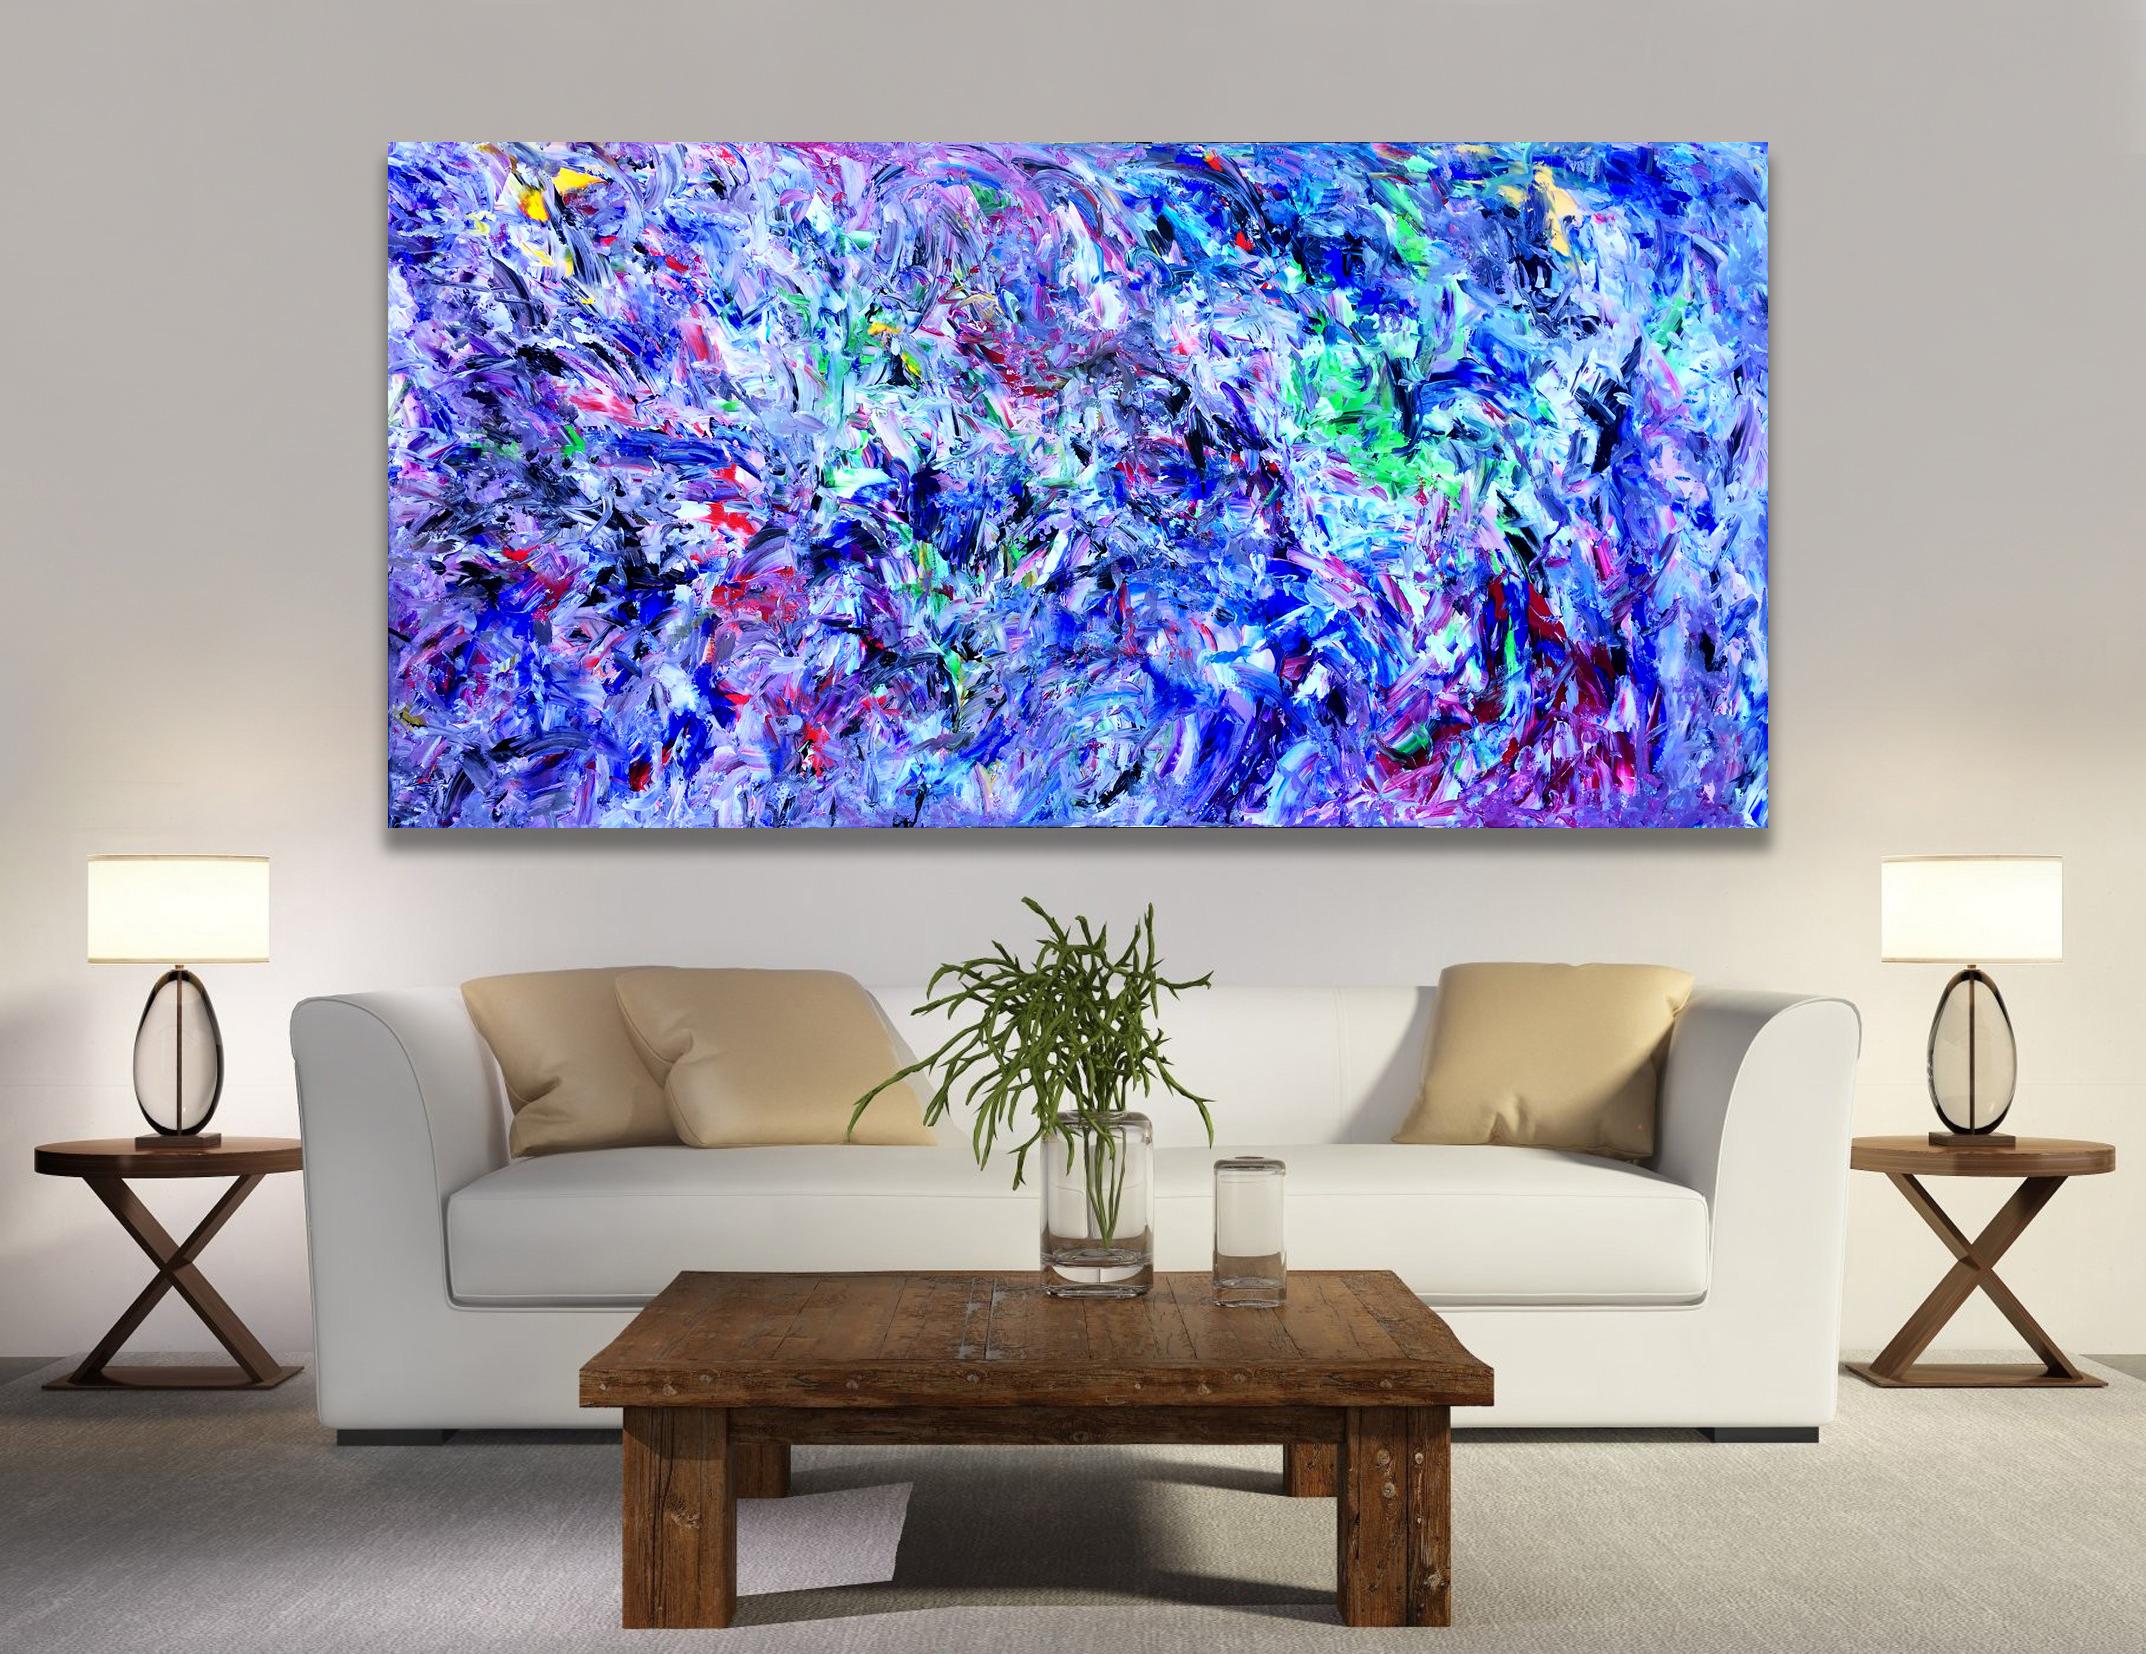 Untitled 65 - Abstract Expressionism by Estelle Asmodelle